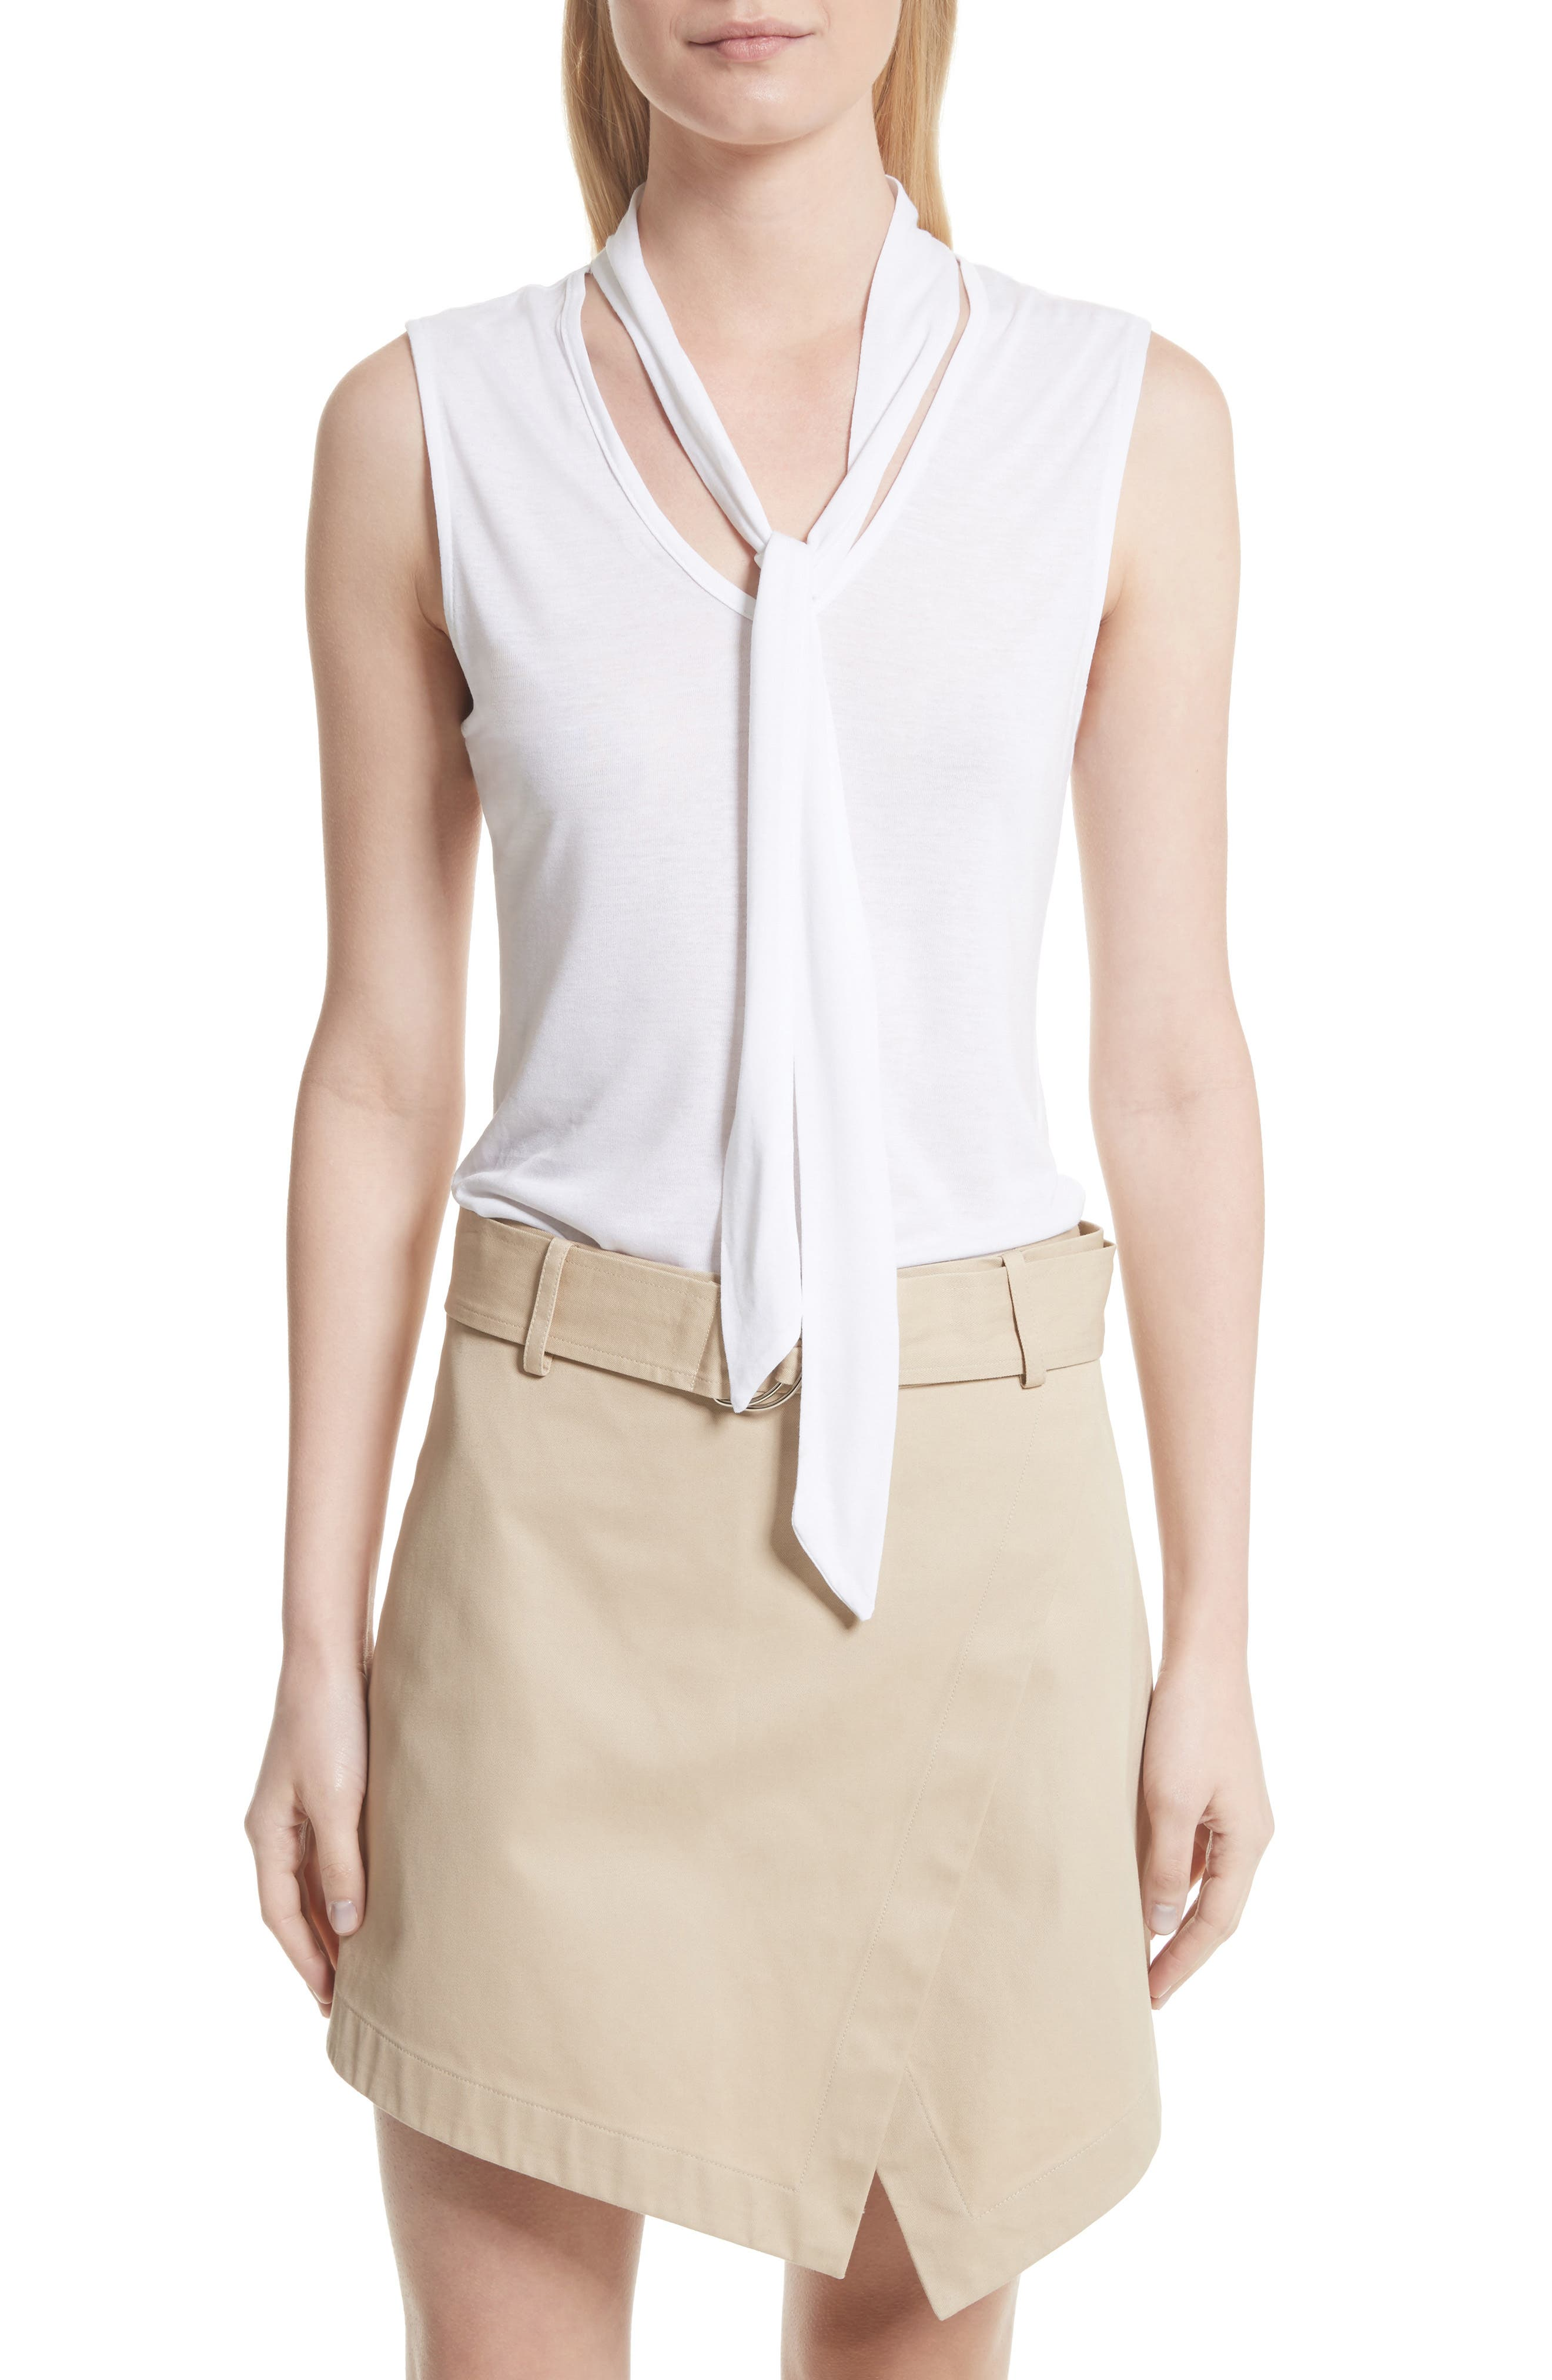 Alternate Image 1 Selected - FRAME Sleeveless Tie Neck Blouse